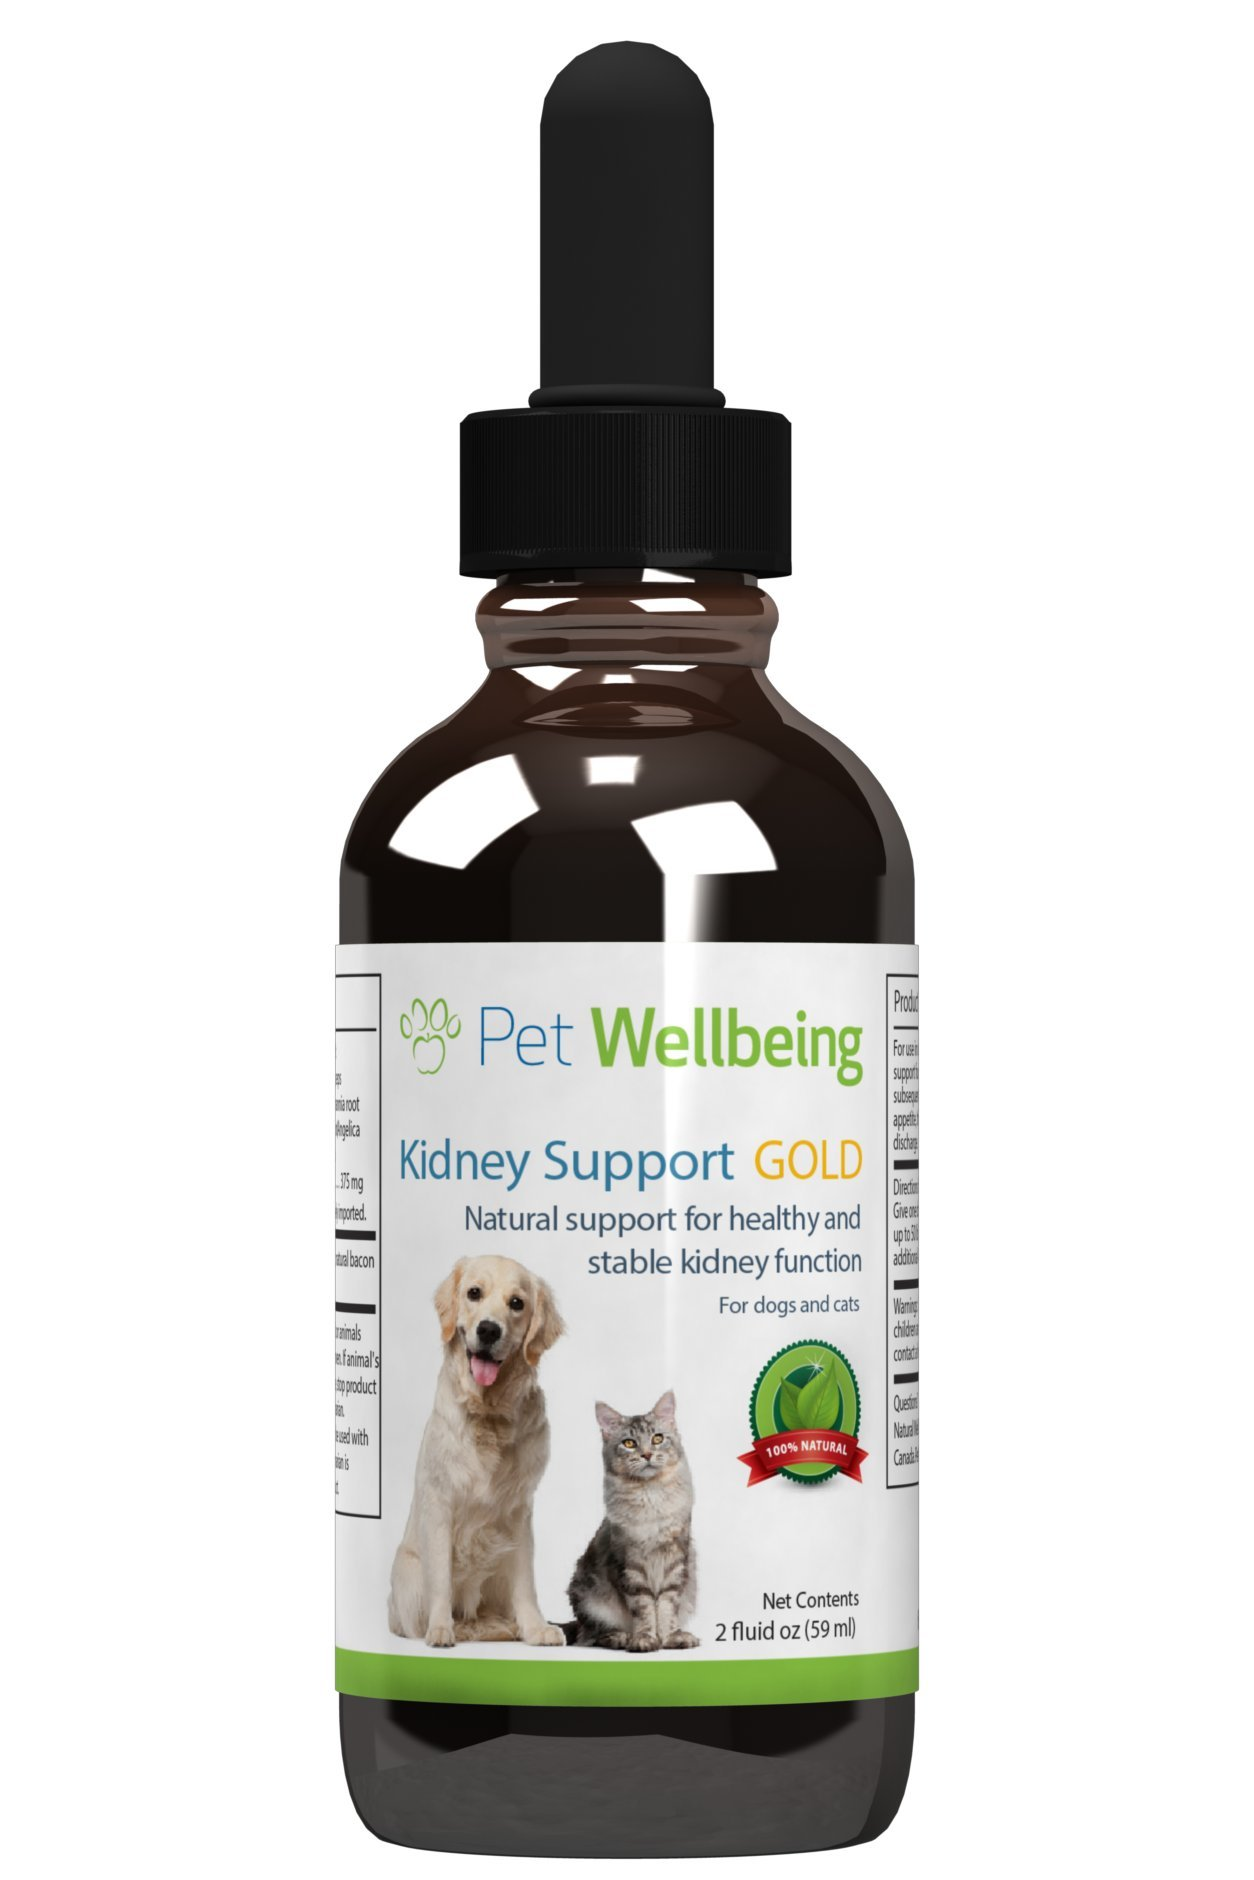 Pet Wellbeing – Kidney Support Gold for Dogs – Natural Support for Canine Kidney Health (2 Ounce)